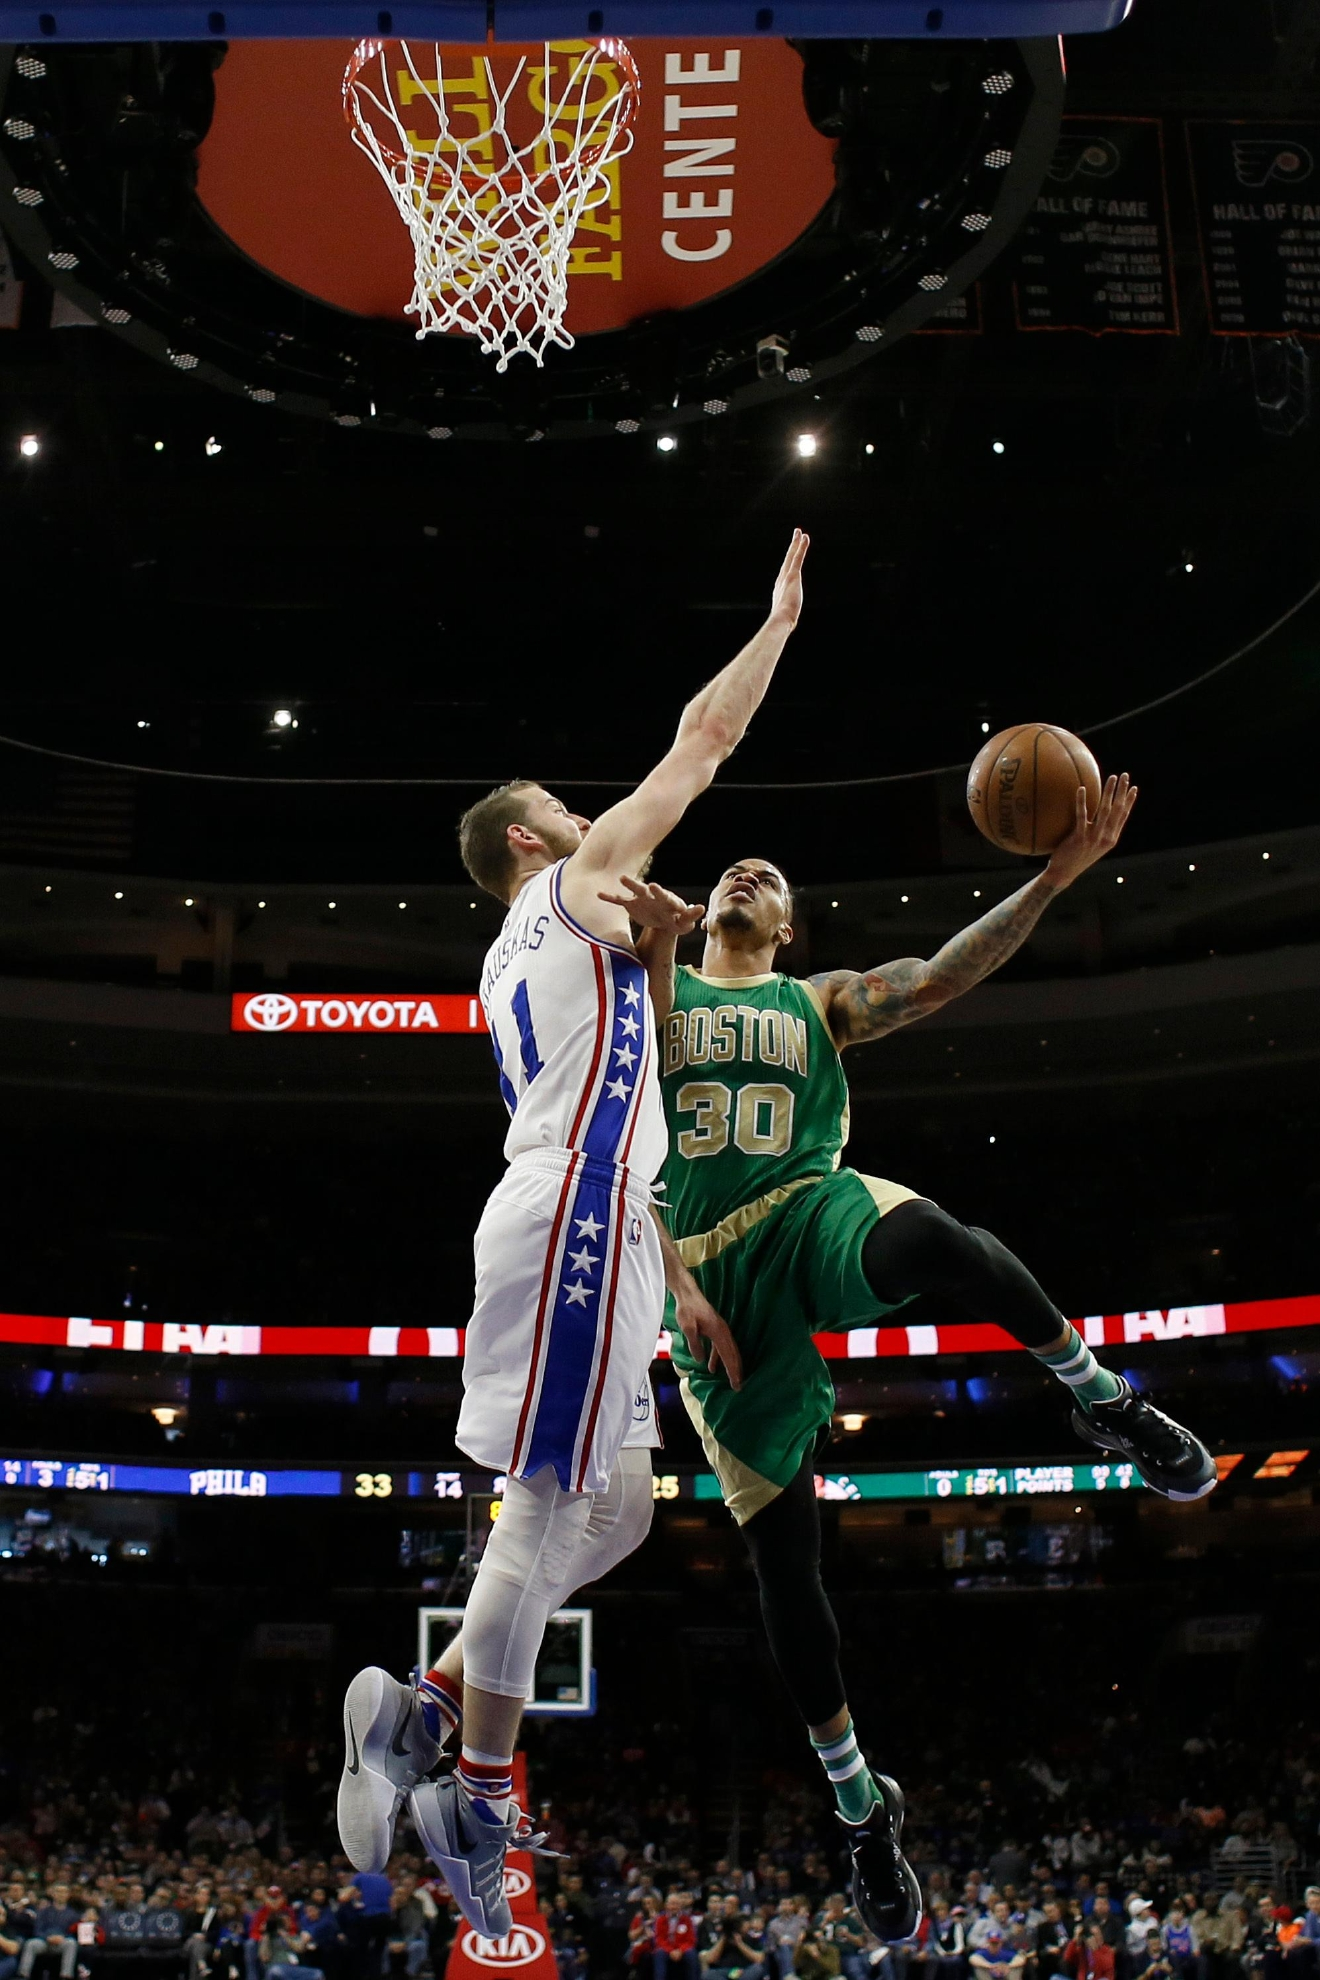 Boston Celtics' Gerald Green, right, goes up to shoot against Philadelphia 76ers' Nik Stauskas during the first half of an NBA basketball game, Sunday, March 19, 2017, in Philadelphia. (AP Photo/Matt Slocum)